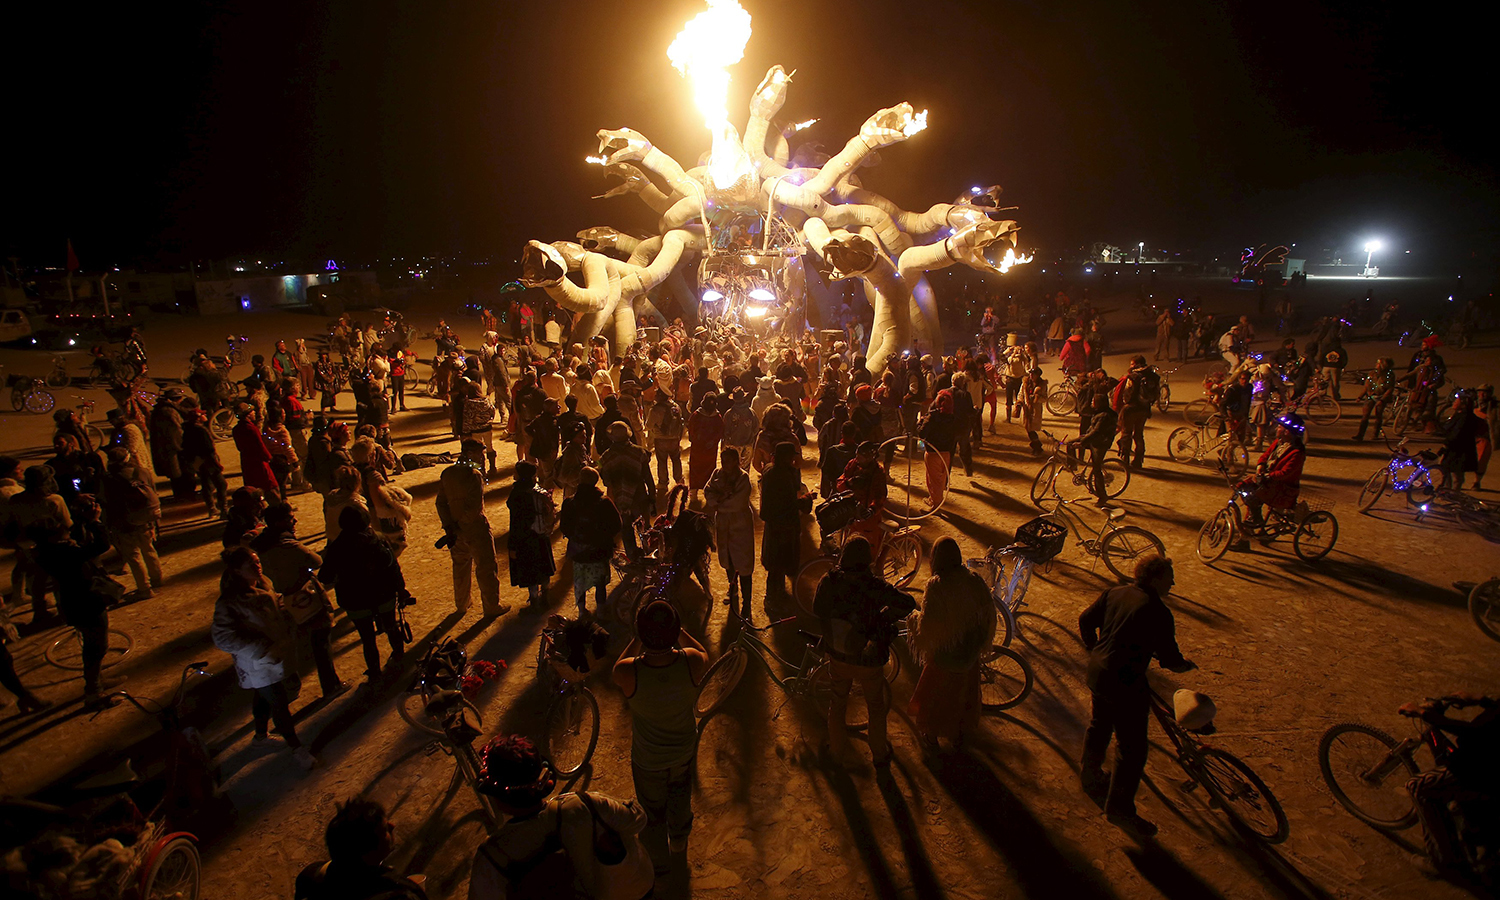 """Participants gather at Medusa Madness during the Burning Man 2015 """"Carnival of Mirrors"""" arts and music festival in the Black Rock Desert of Nevada on September 6, 2015. — Reuters"""